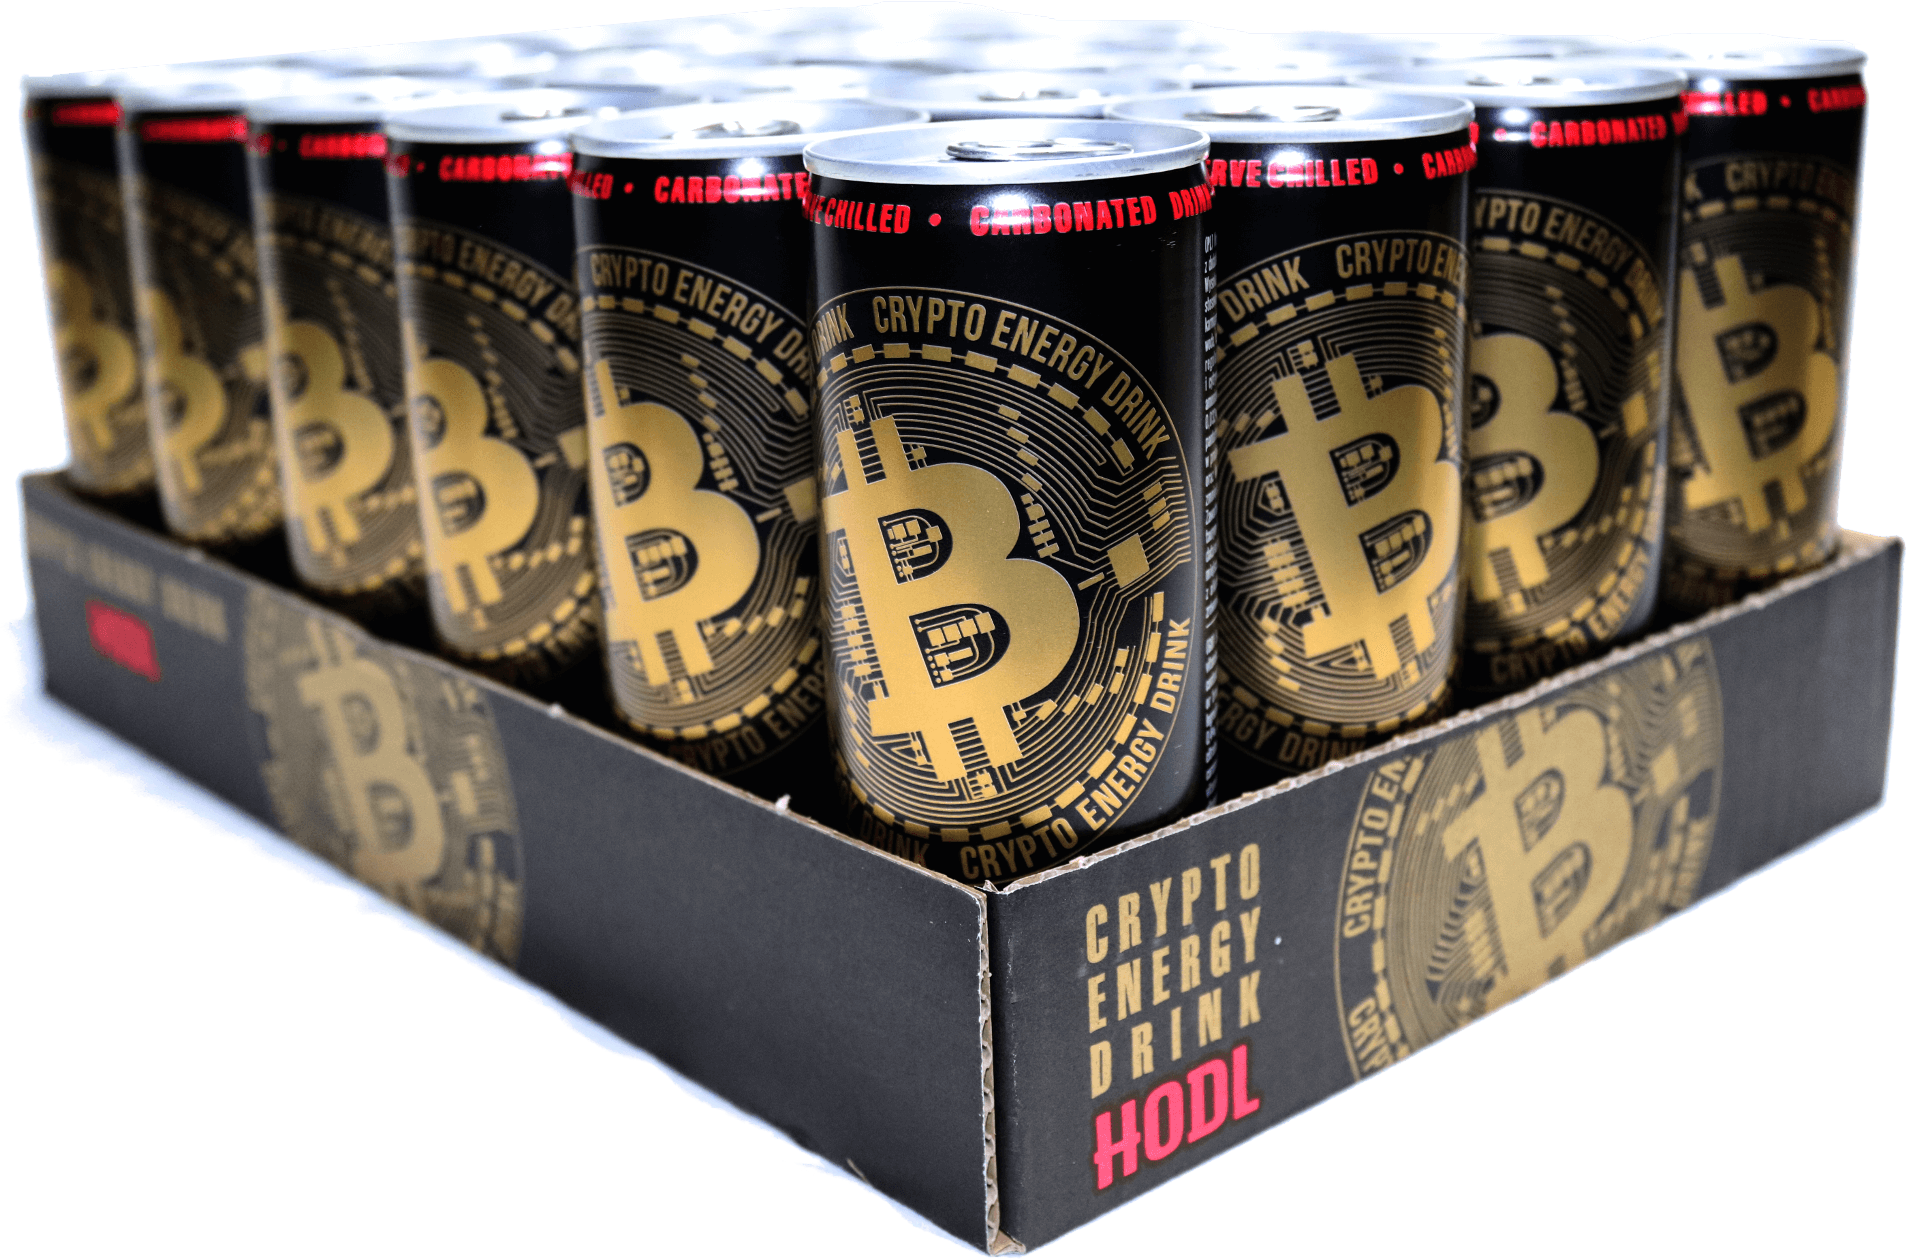 24 szt. Crypto Energy Drink